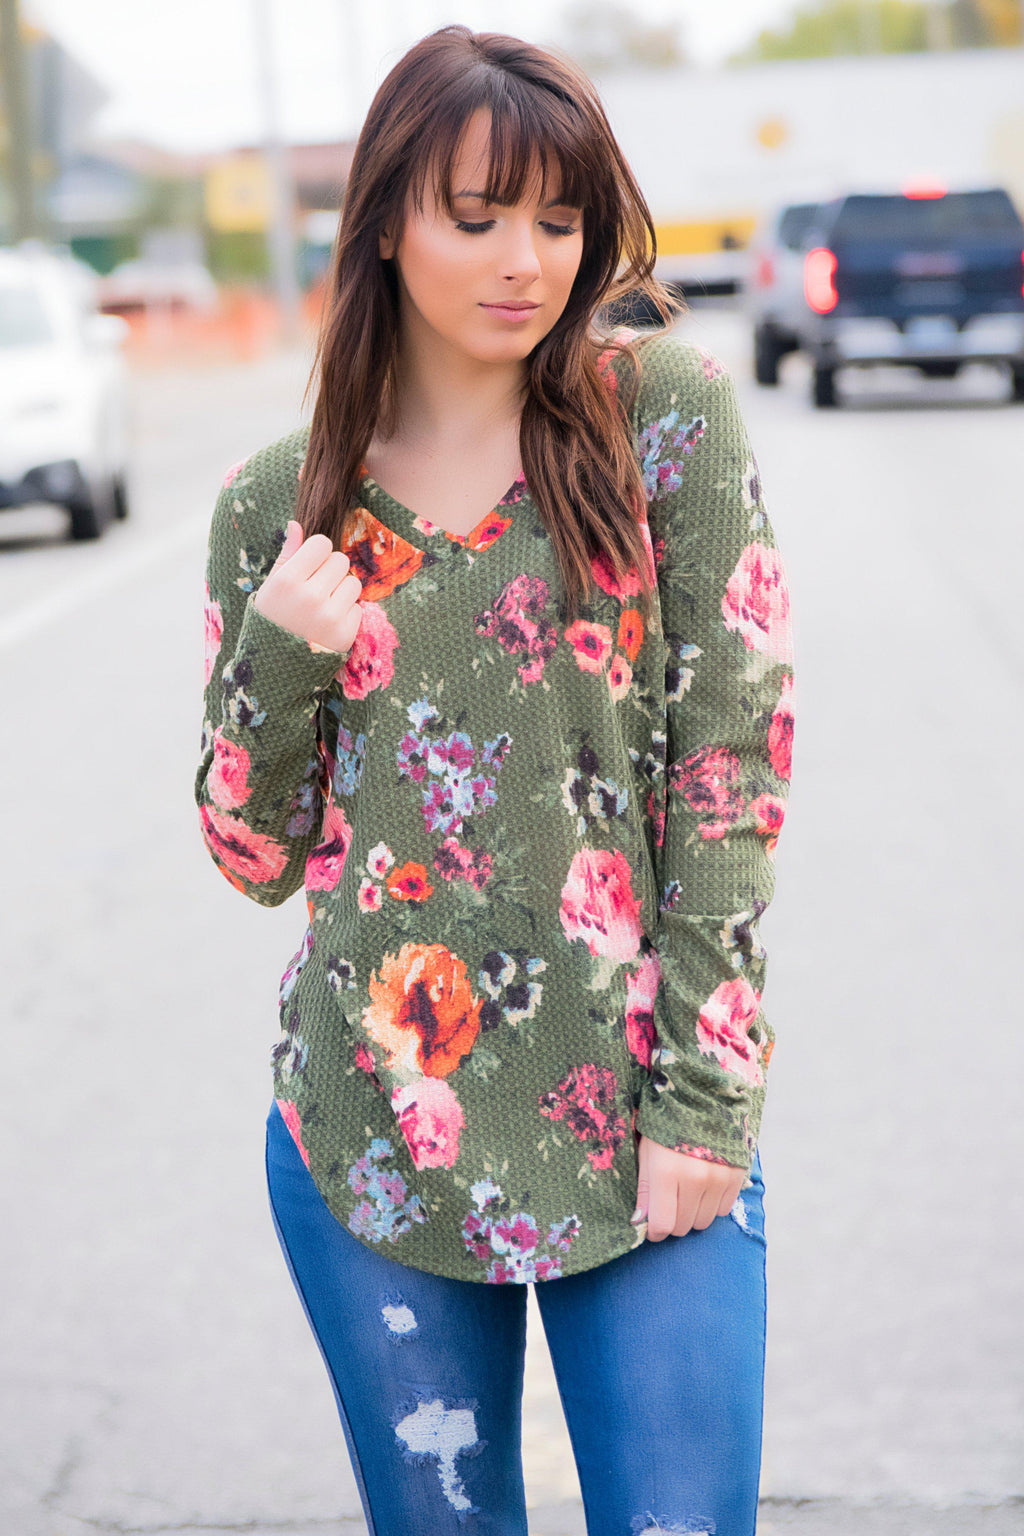 Stop Time Floral Waffle Knit Top -Olive - 512 Boutique